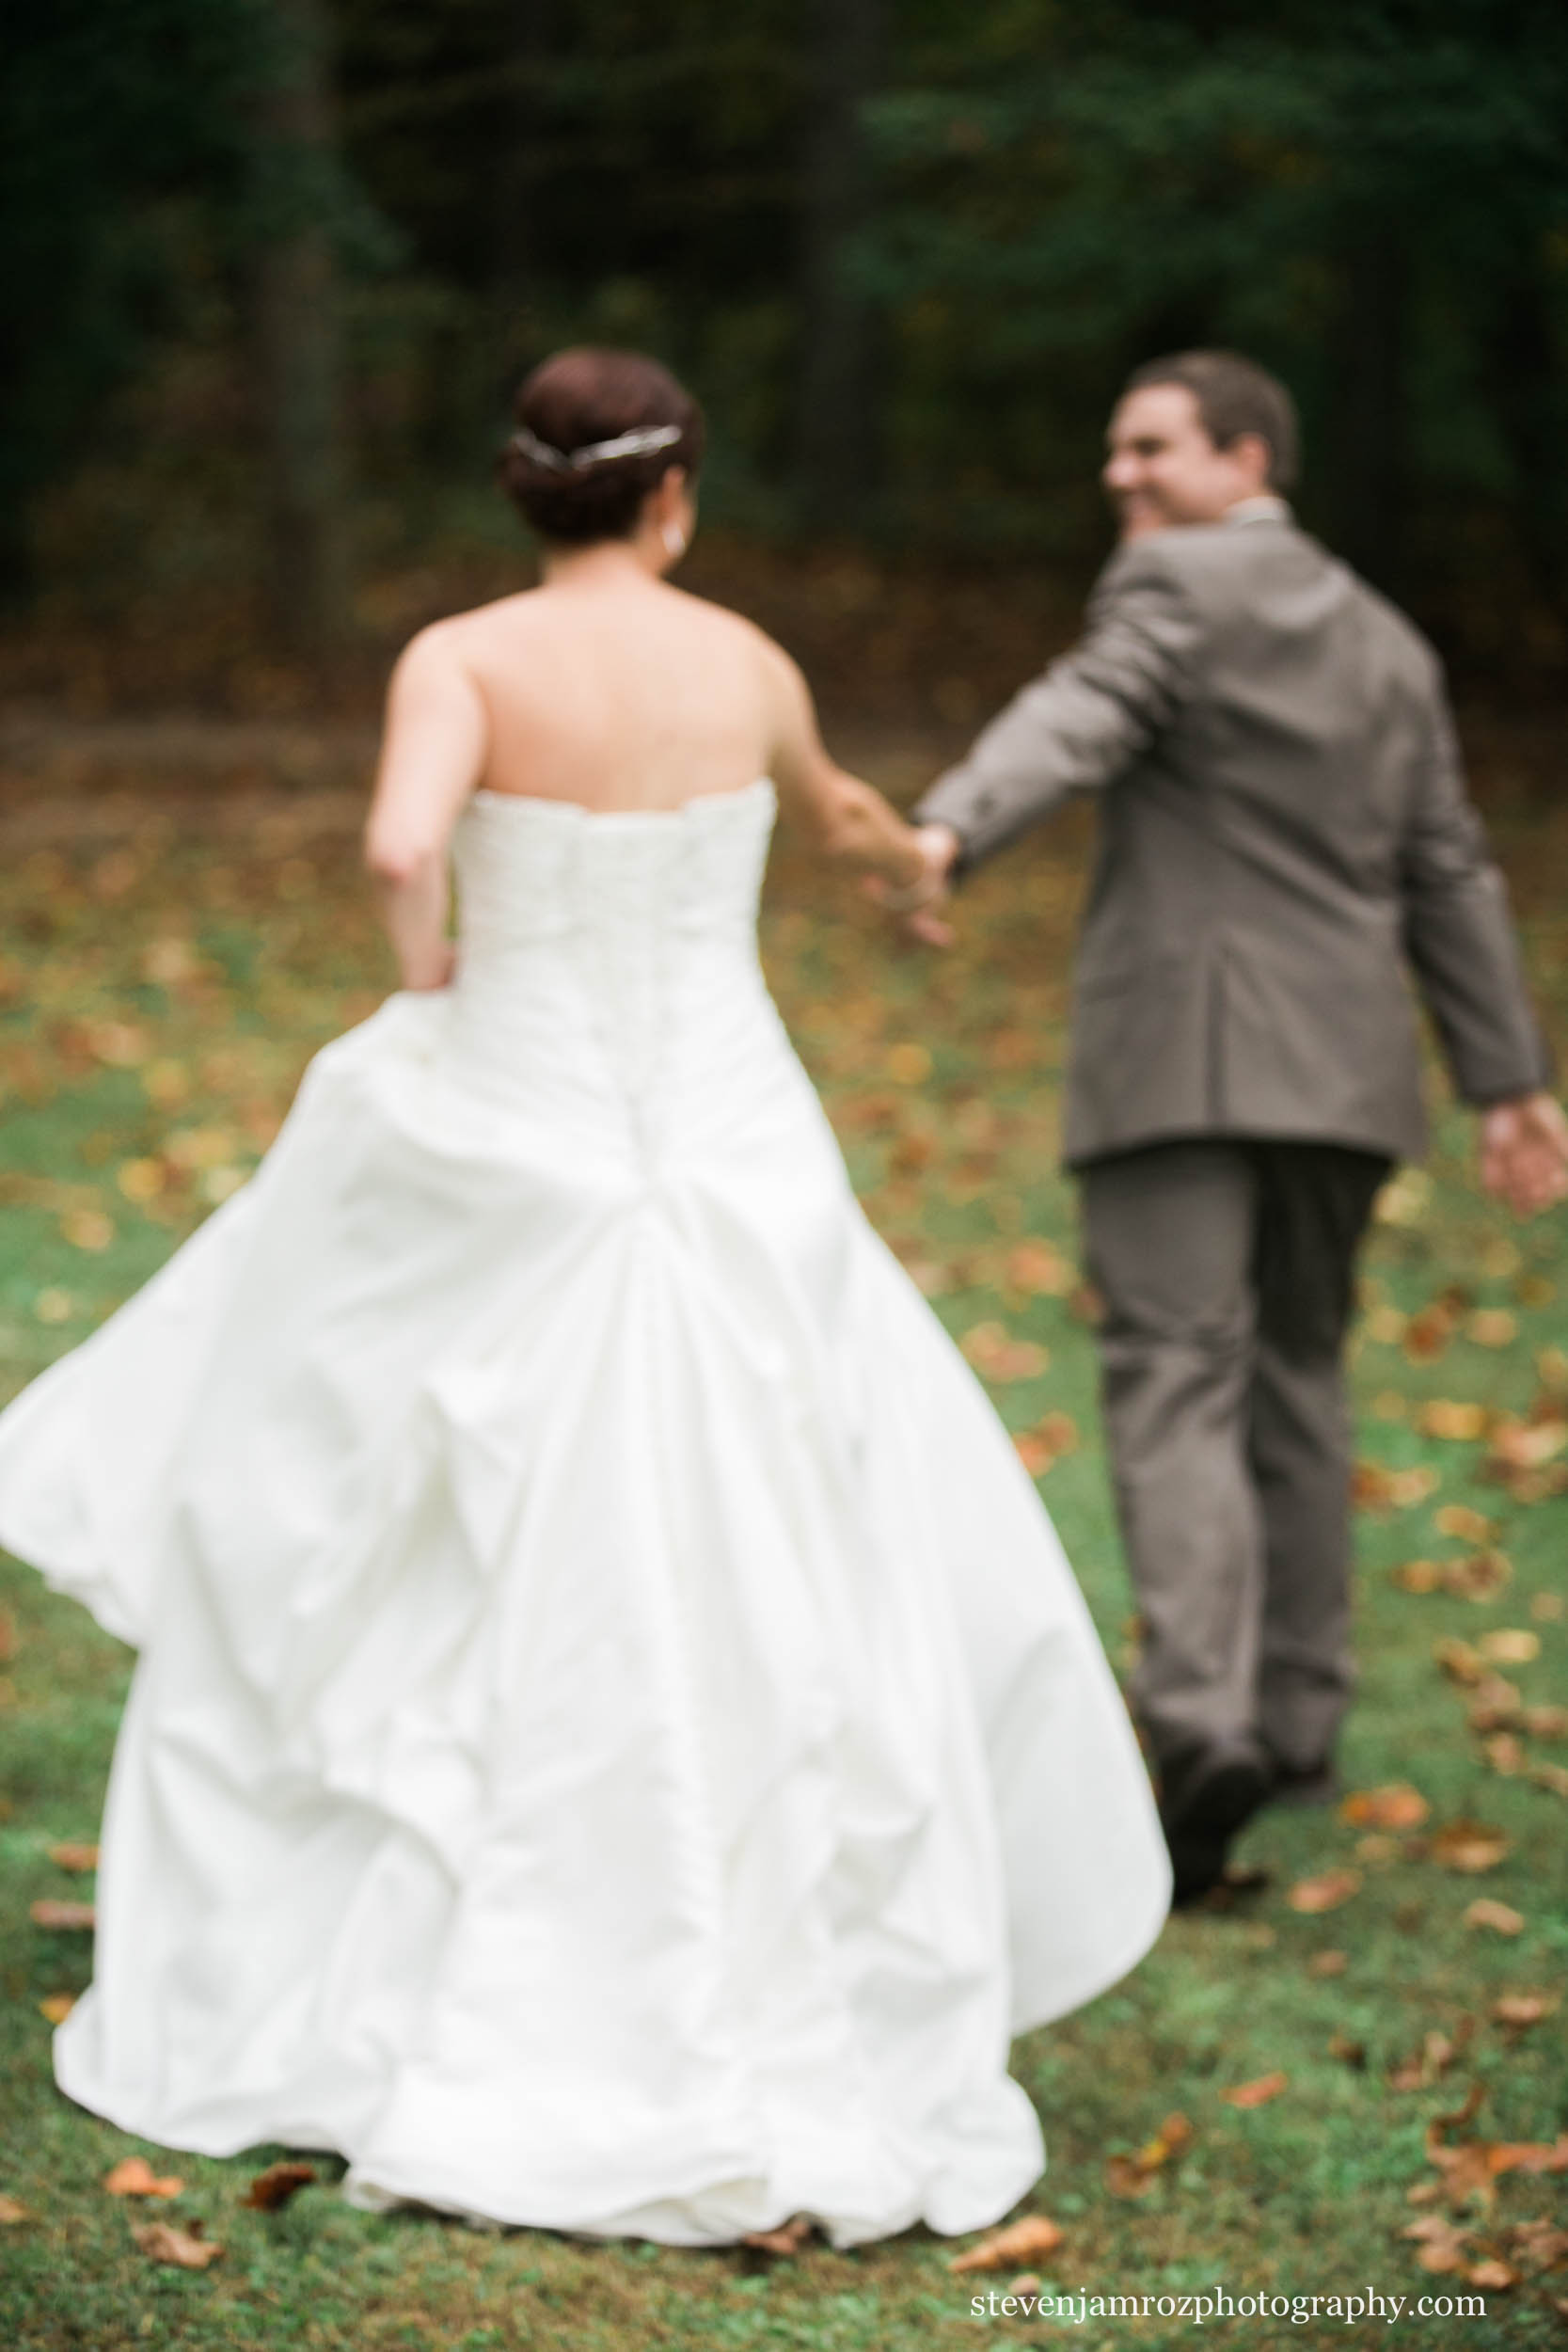 walking-bride-groom-fall-wedding-raleigh-steven-jamroz-photography-0377.jpg